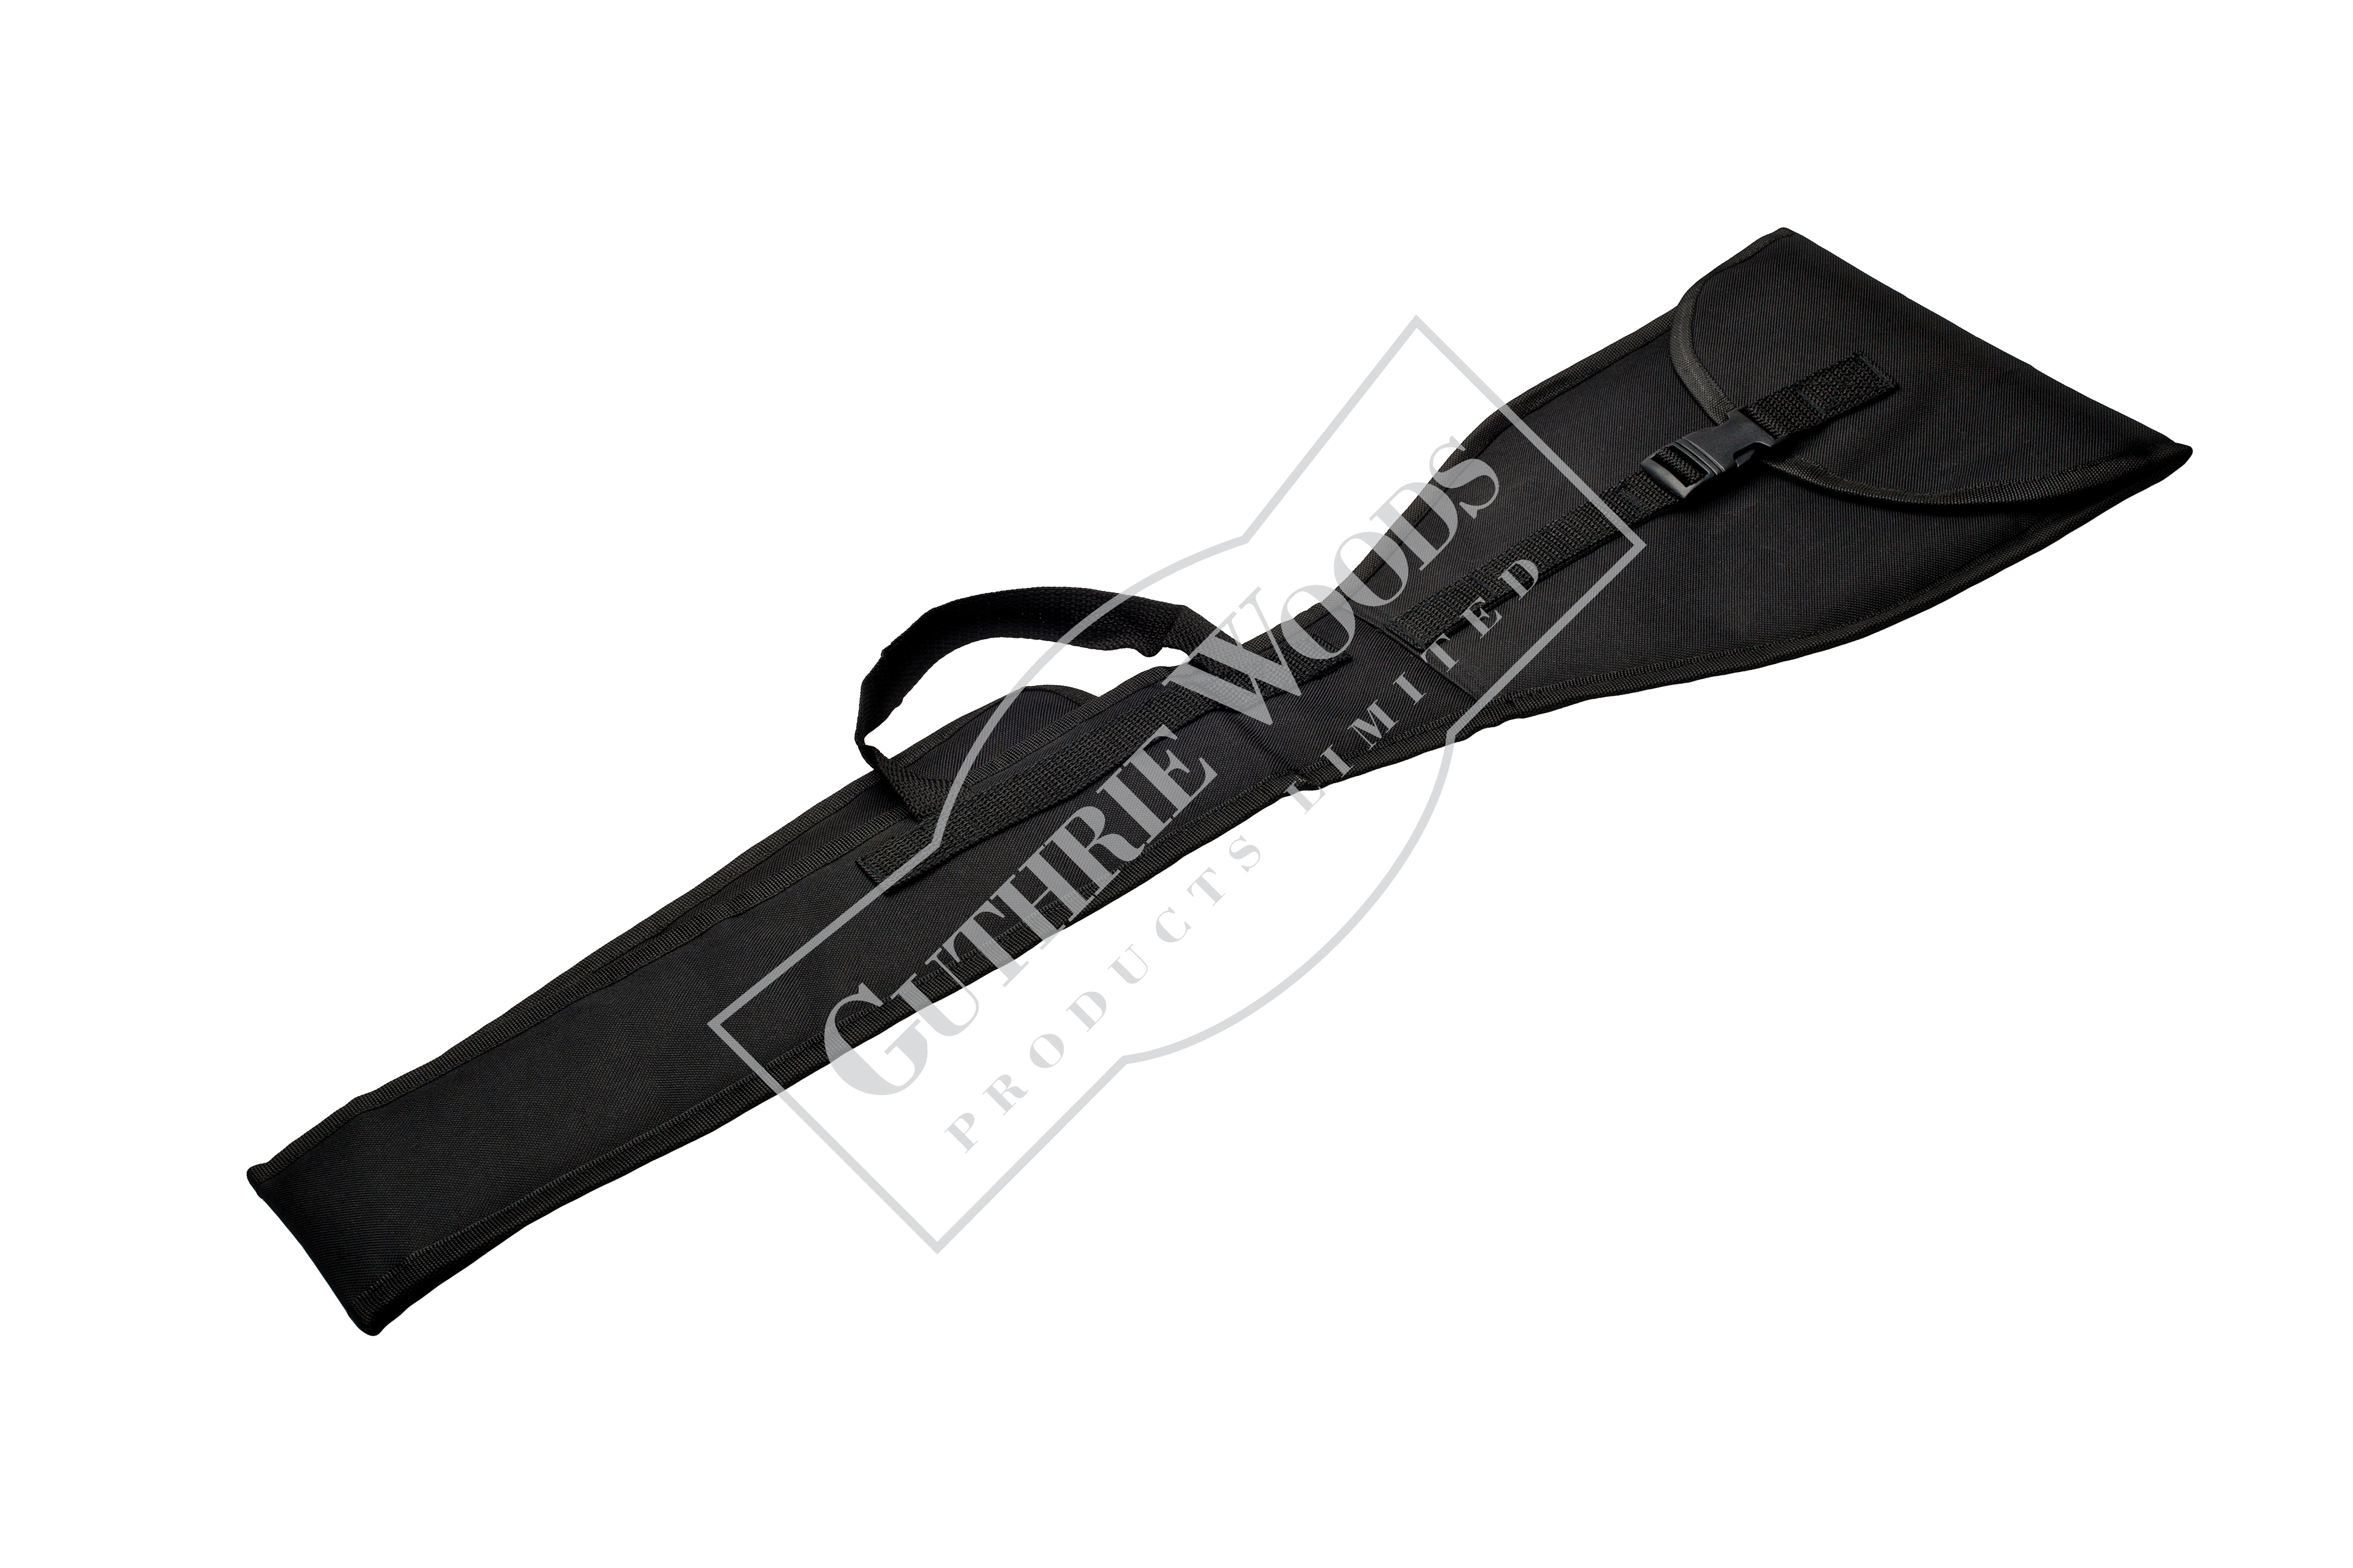 275-BAG - Sword - Nylon